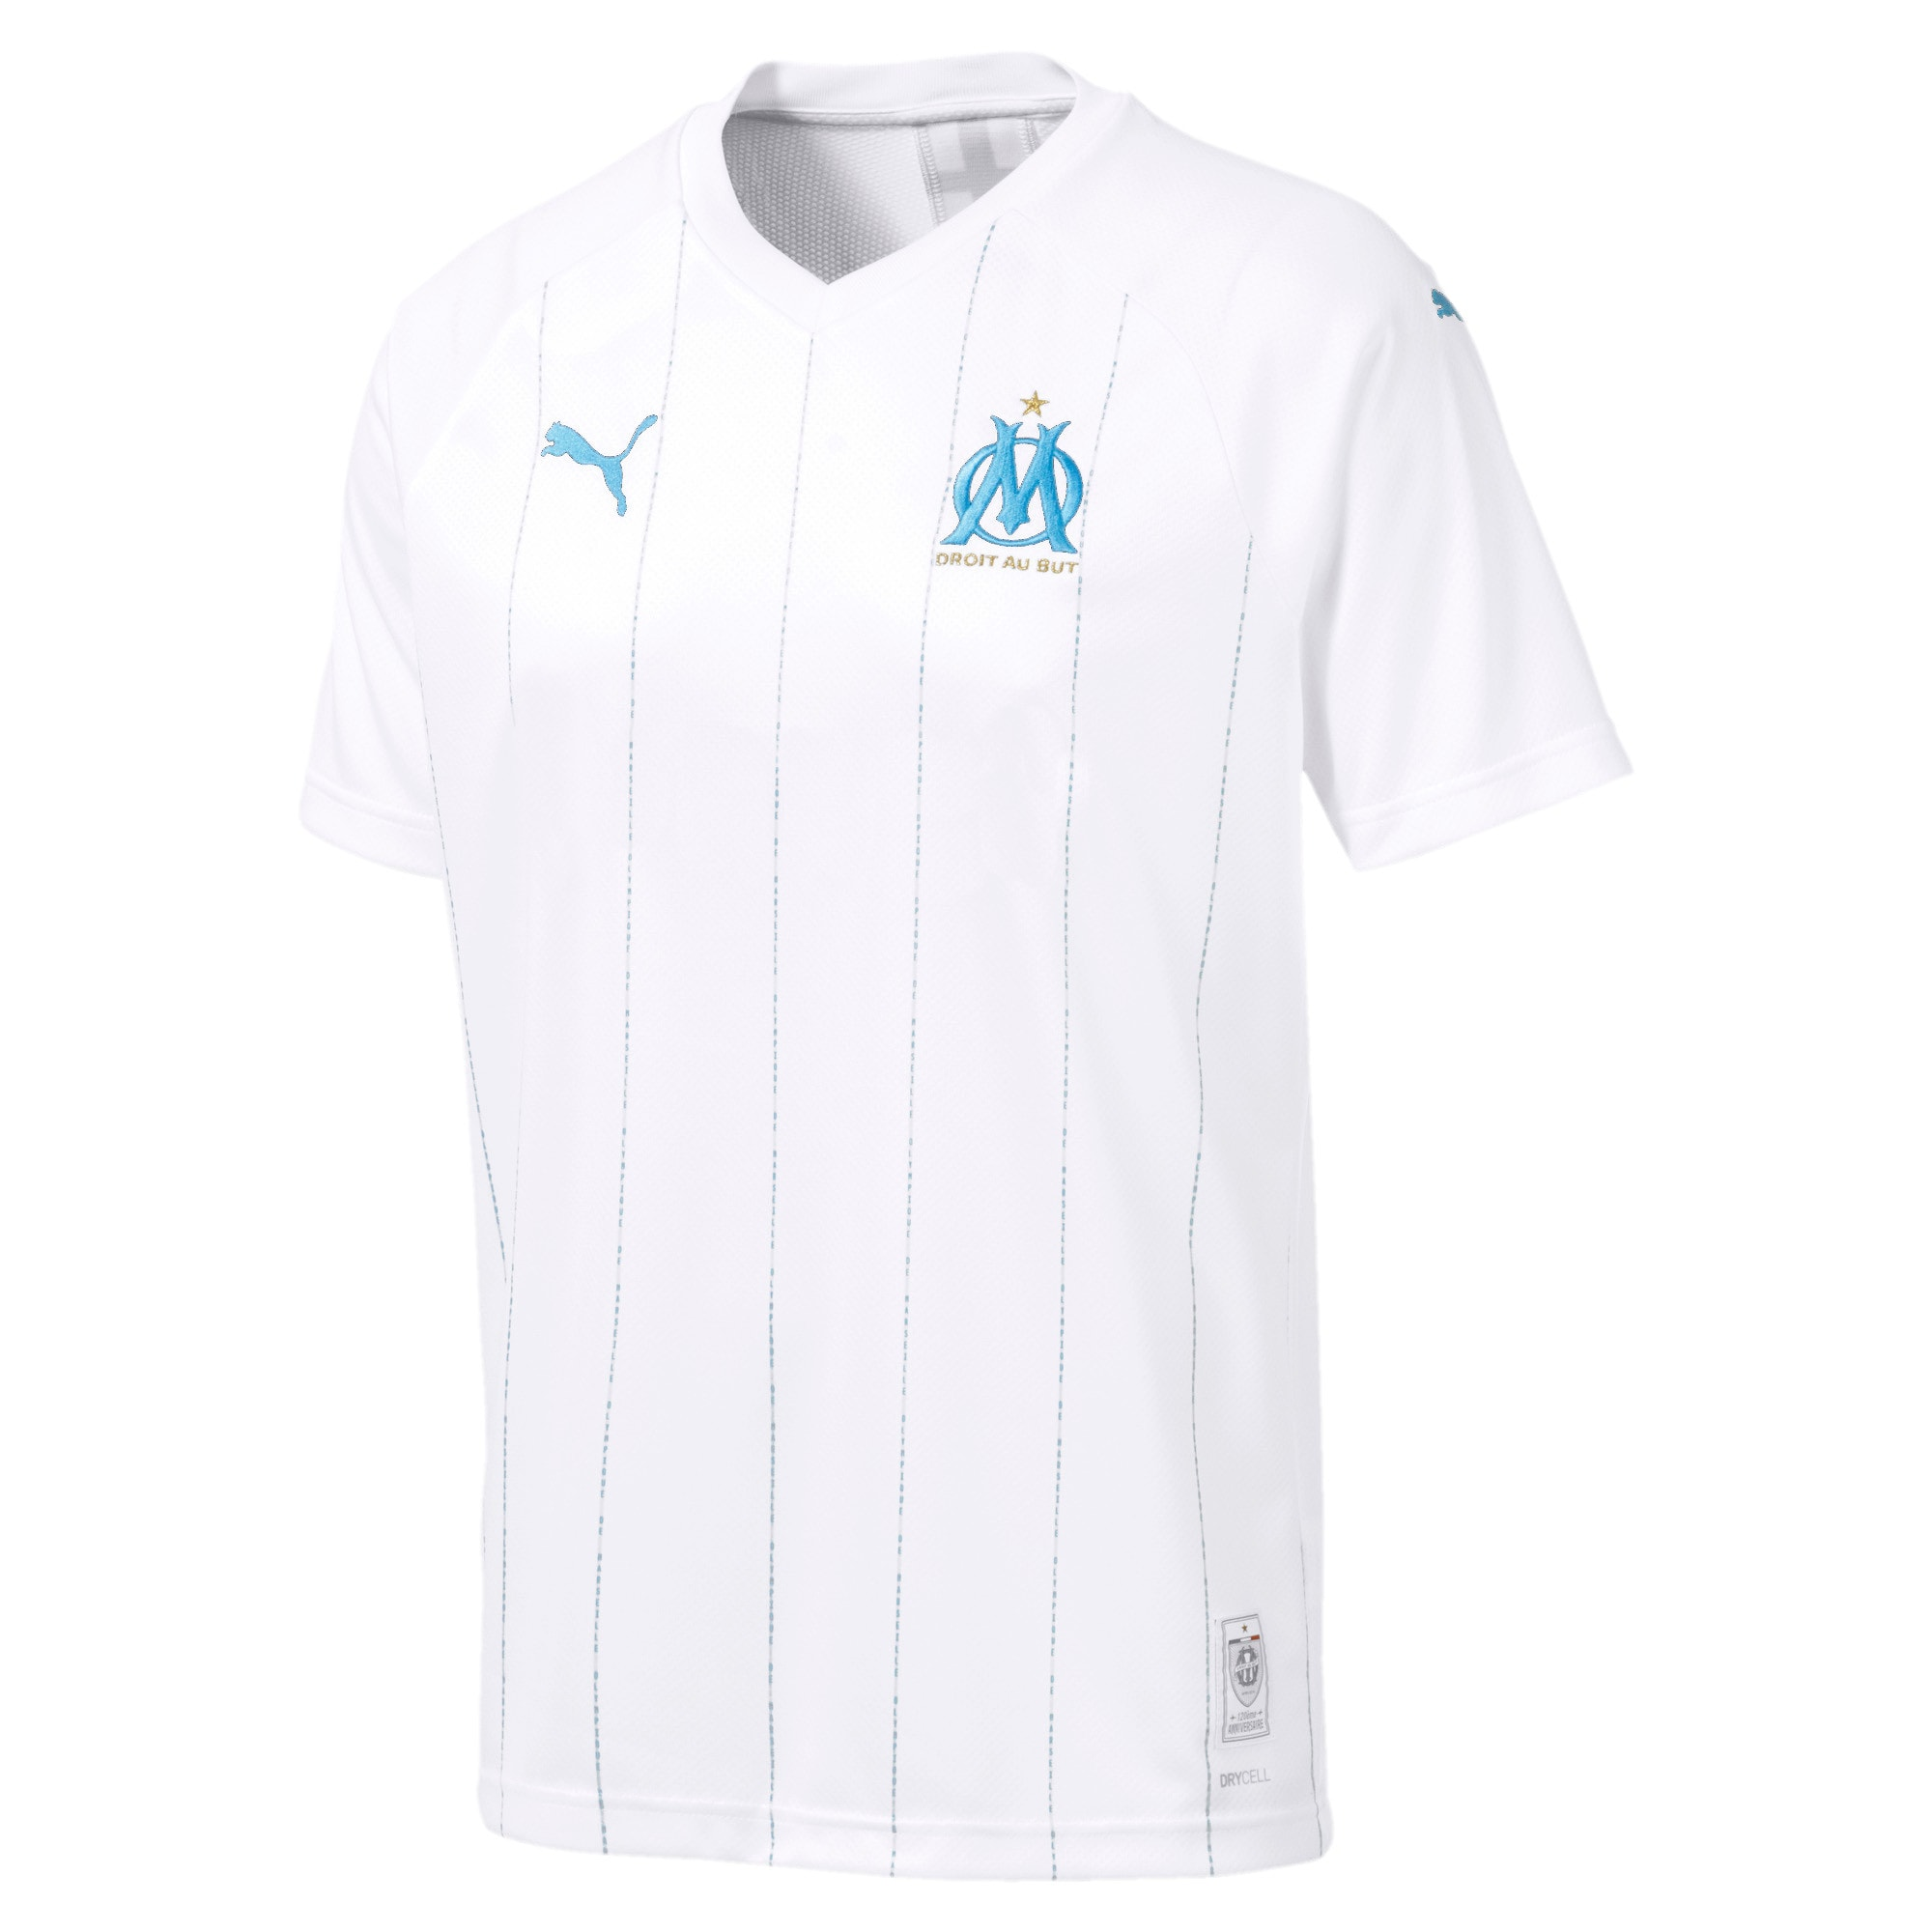 Thumbnail 1 of Olympique de Marseille Herren Replica Heimtrikot, Puma White-Bleu Azur, medium